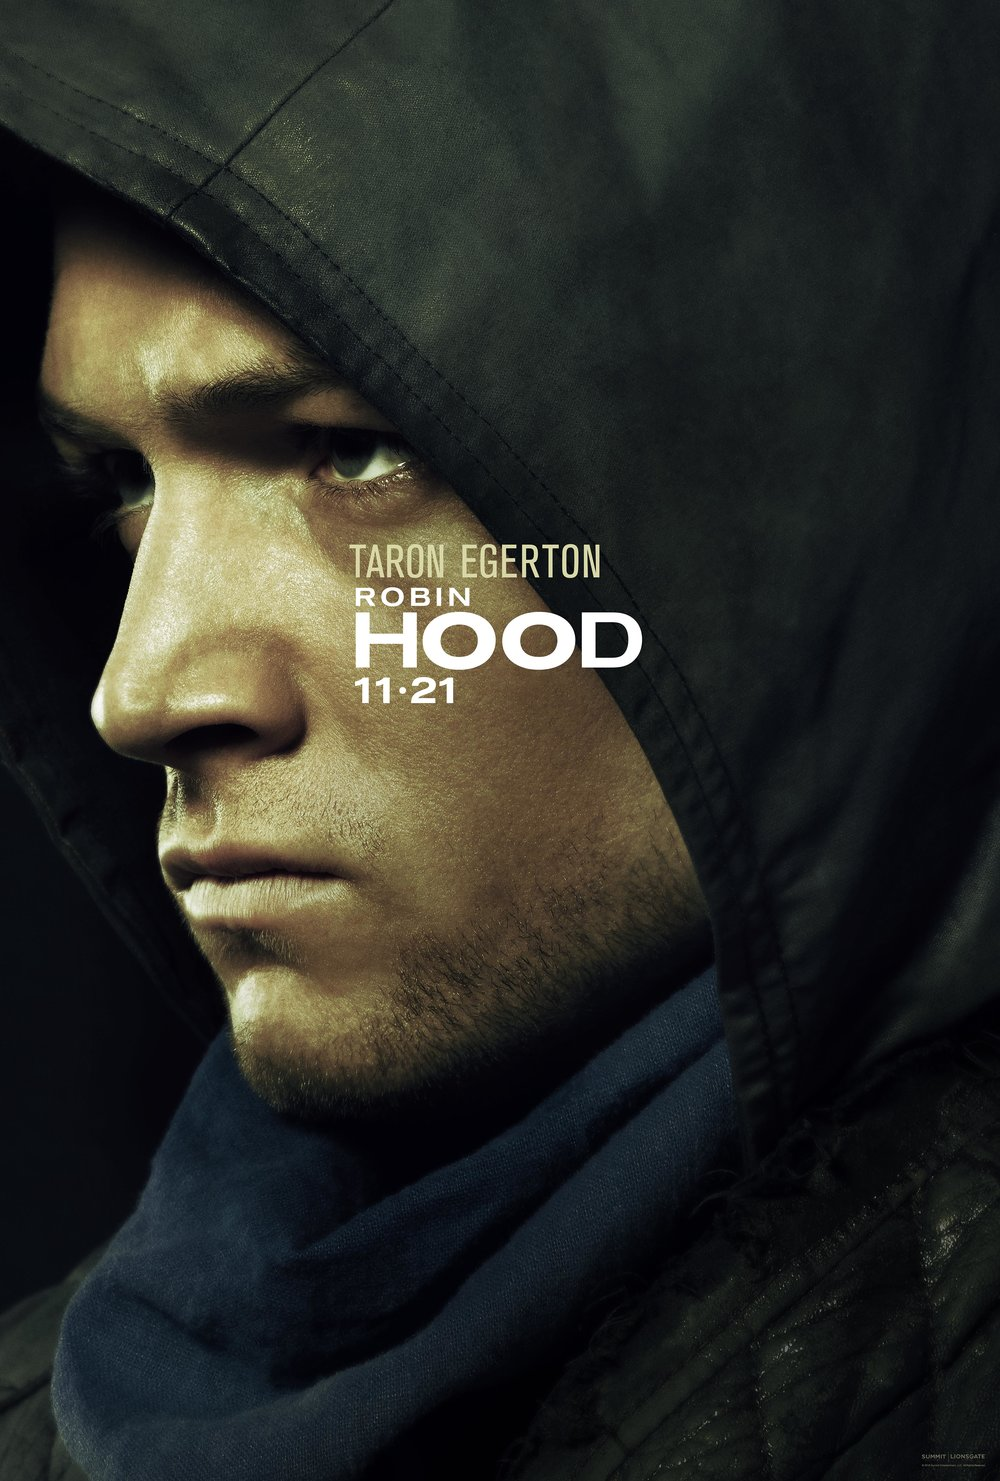 two-character-posters-for-robin-hood-feature-taron-egerton-and-jaimie-foxx1